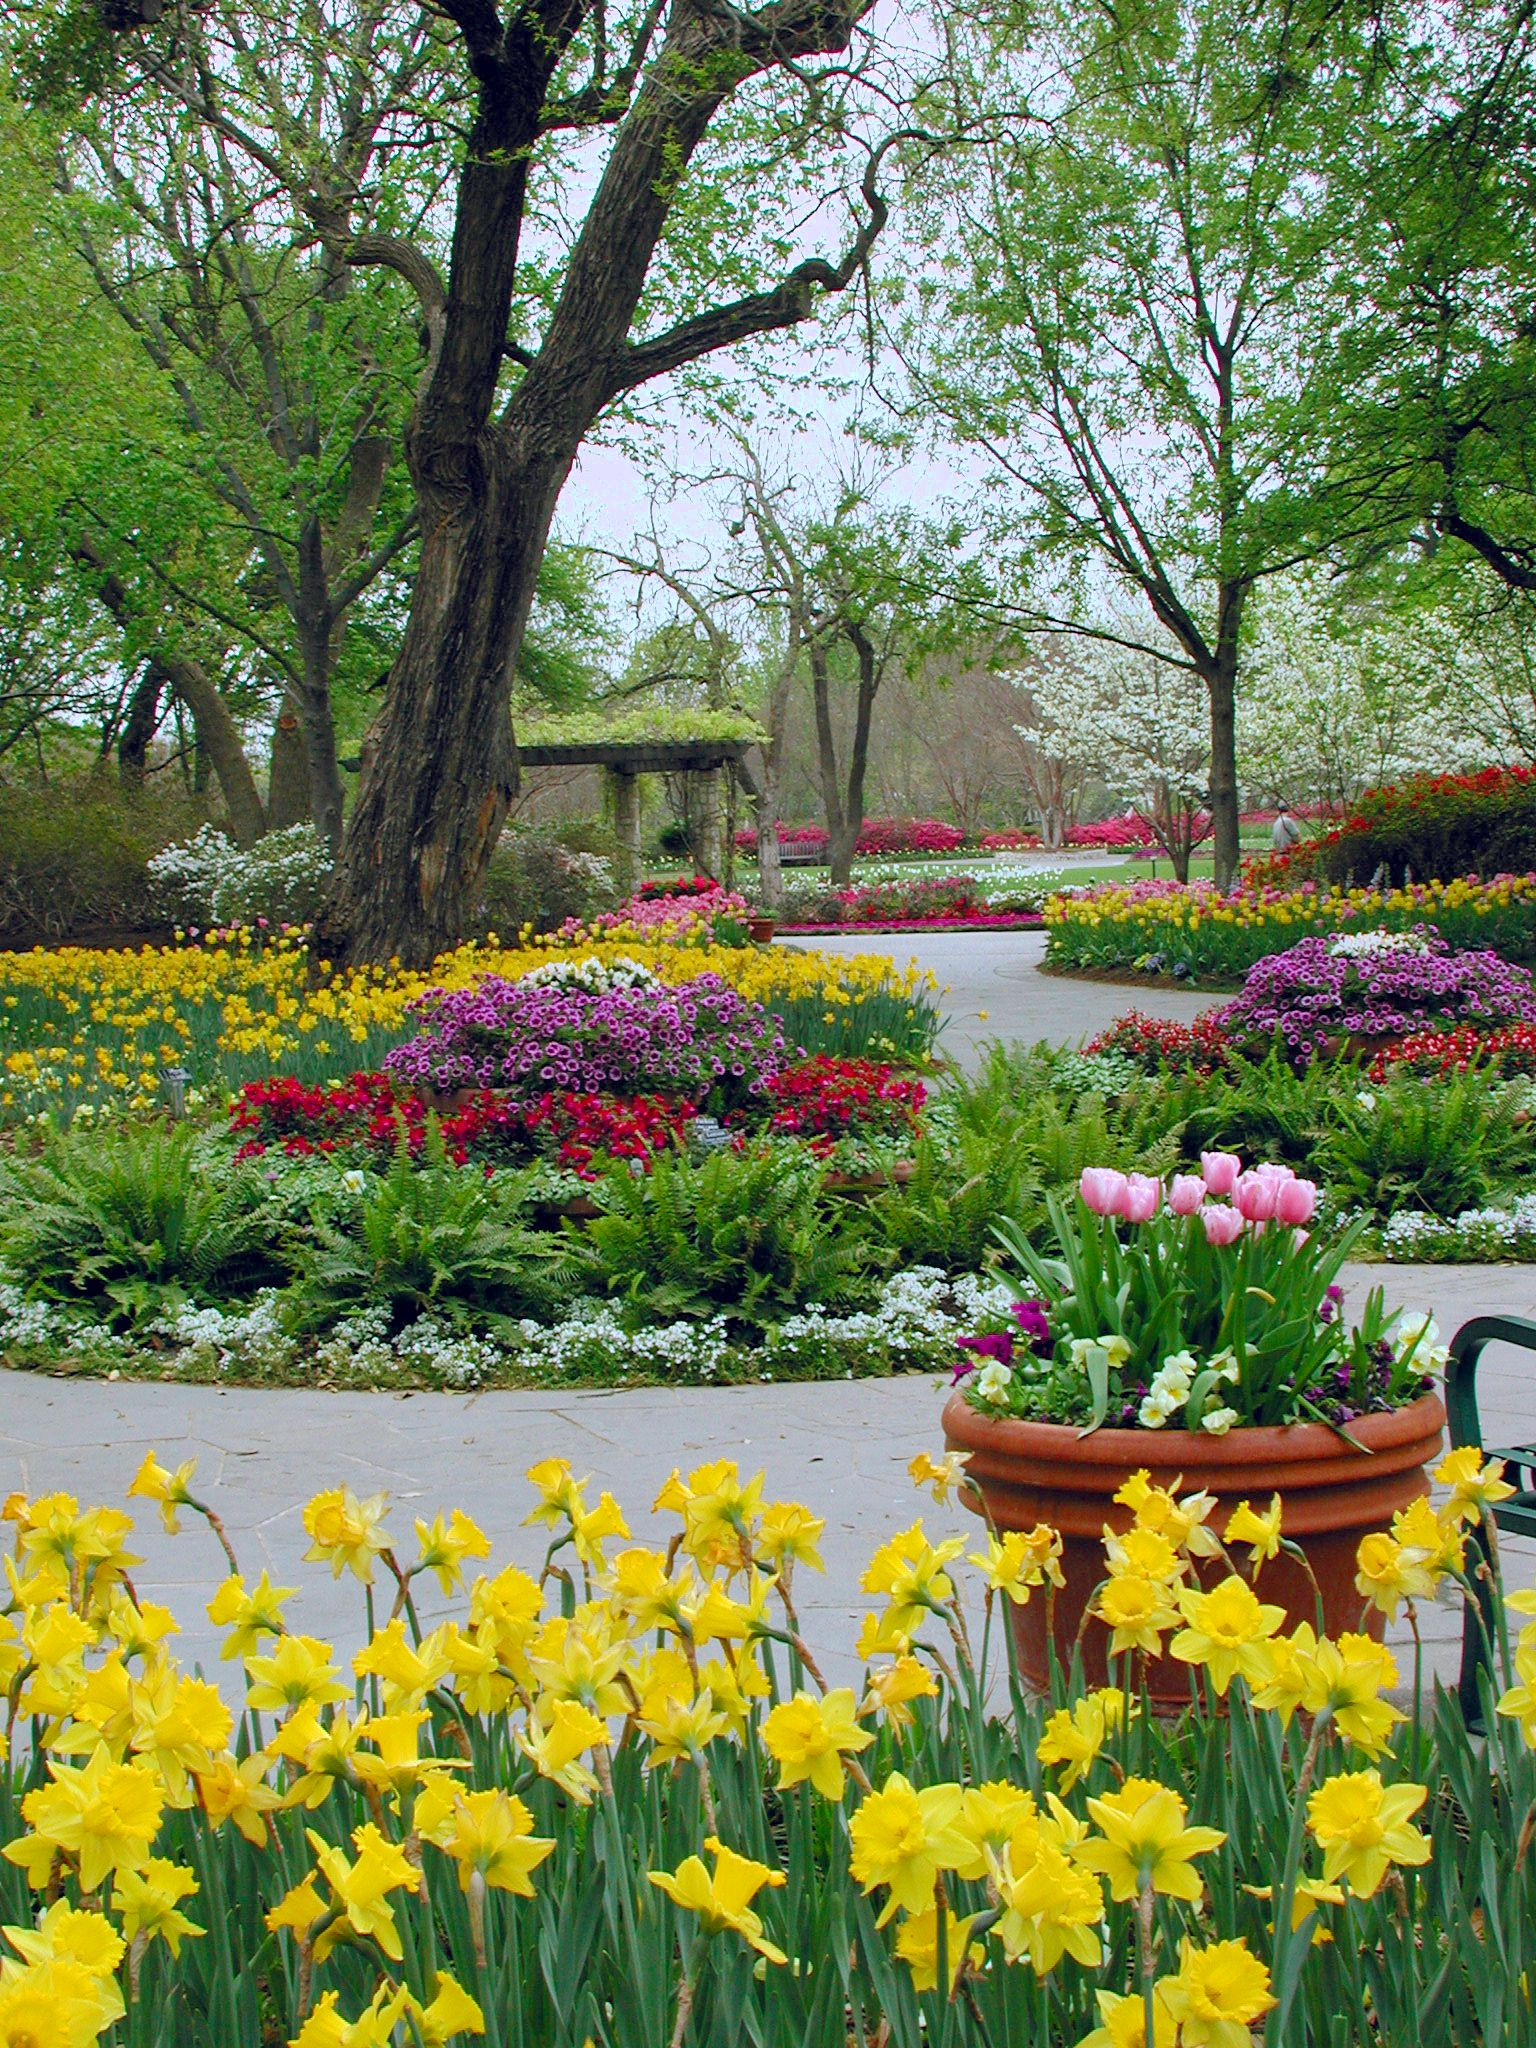 dallas blooms at the arboretum - seriously, what's not to love